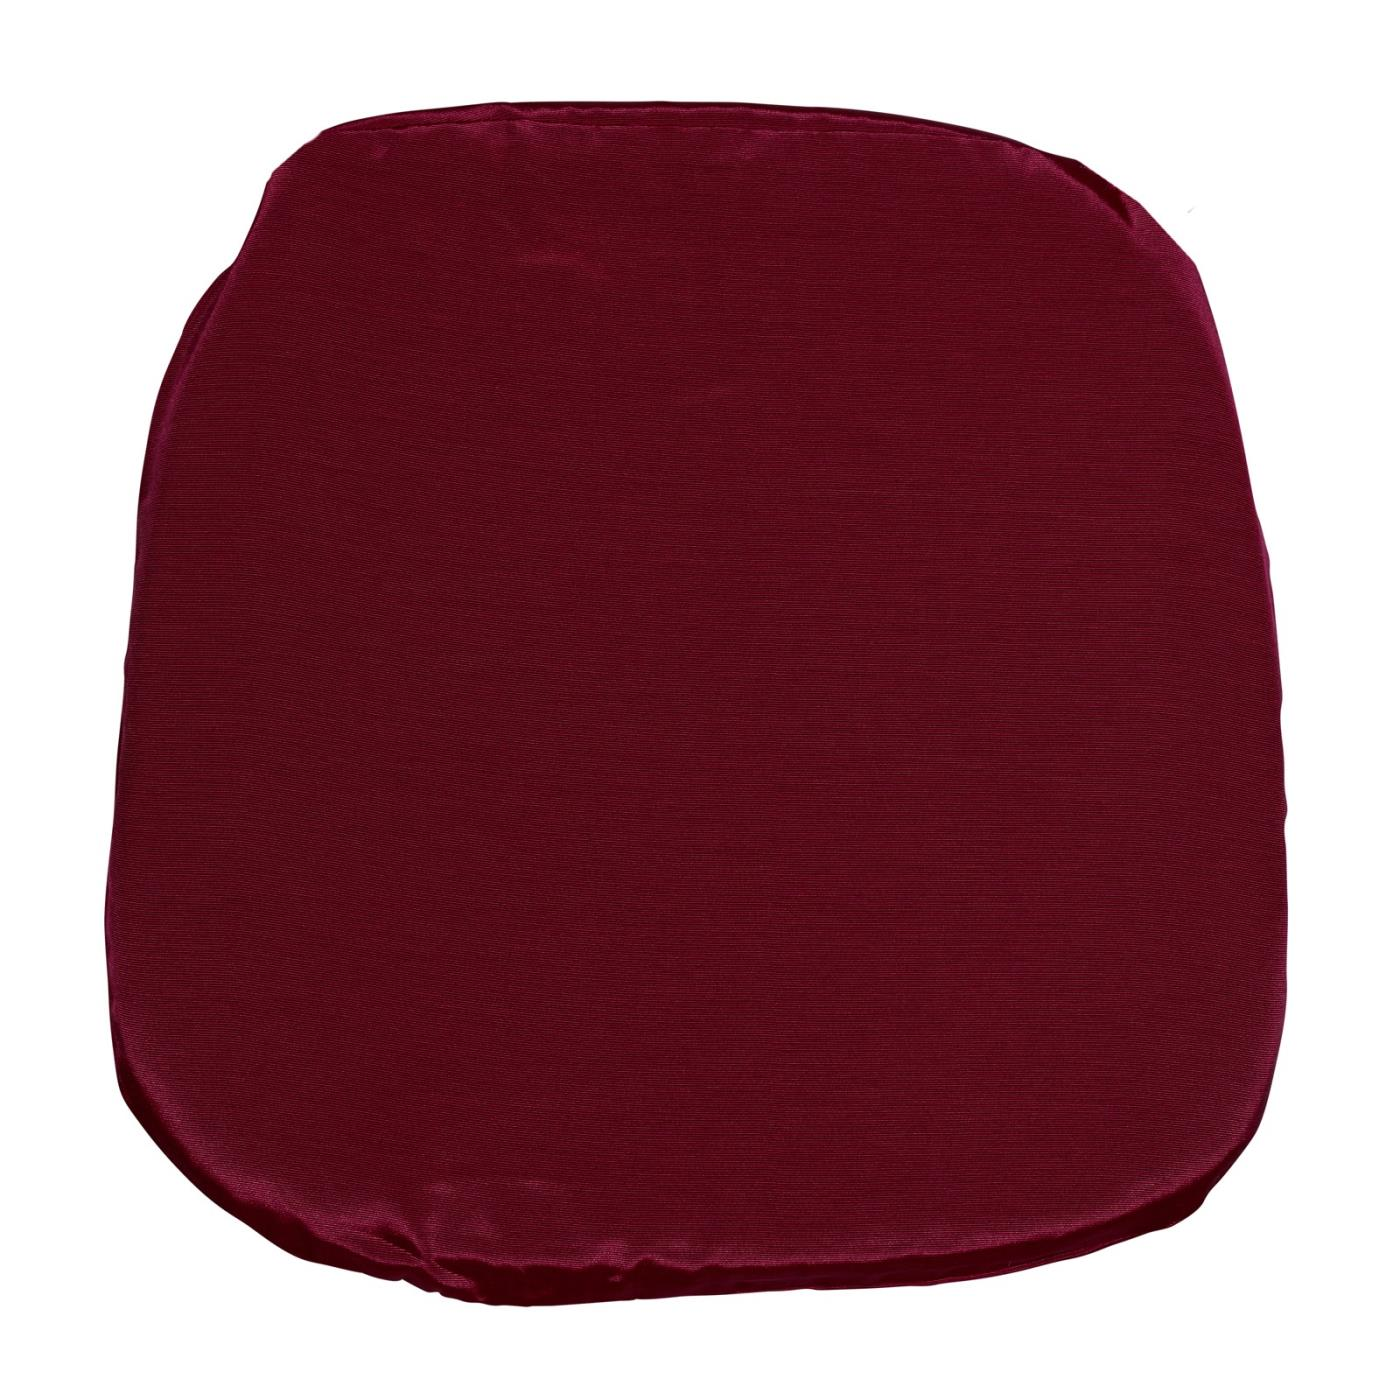 Bengaline Seat Cushion - Cranberry